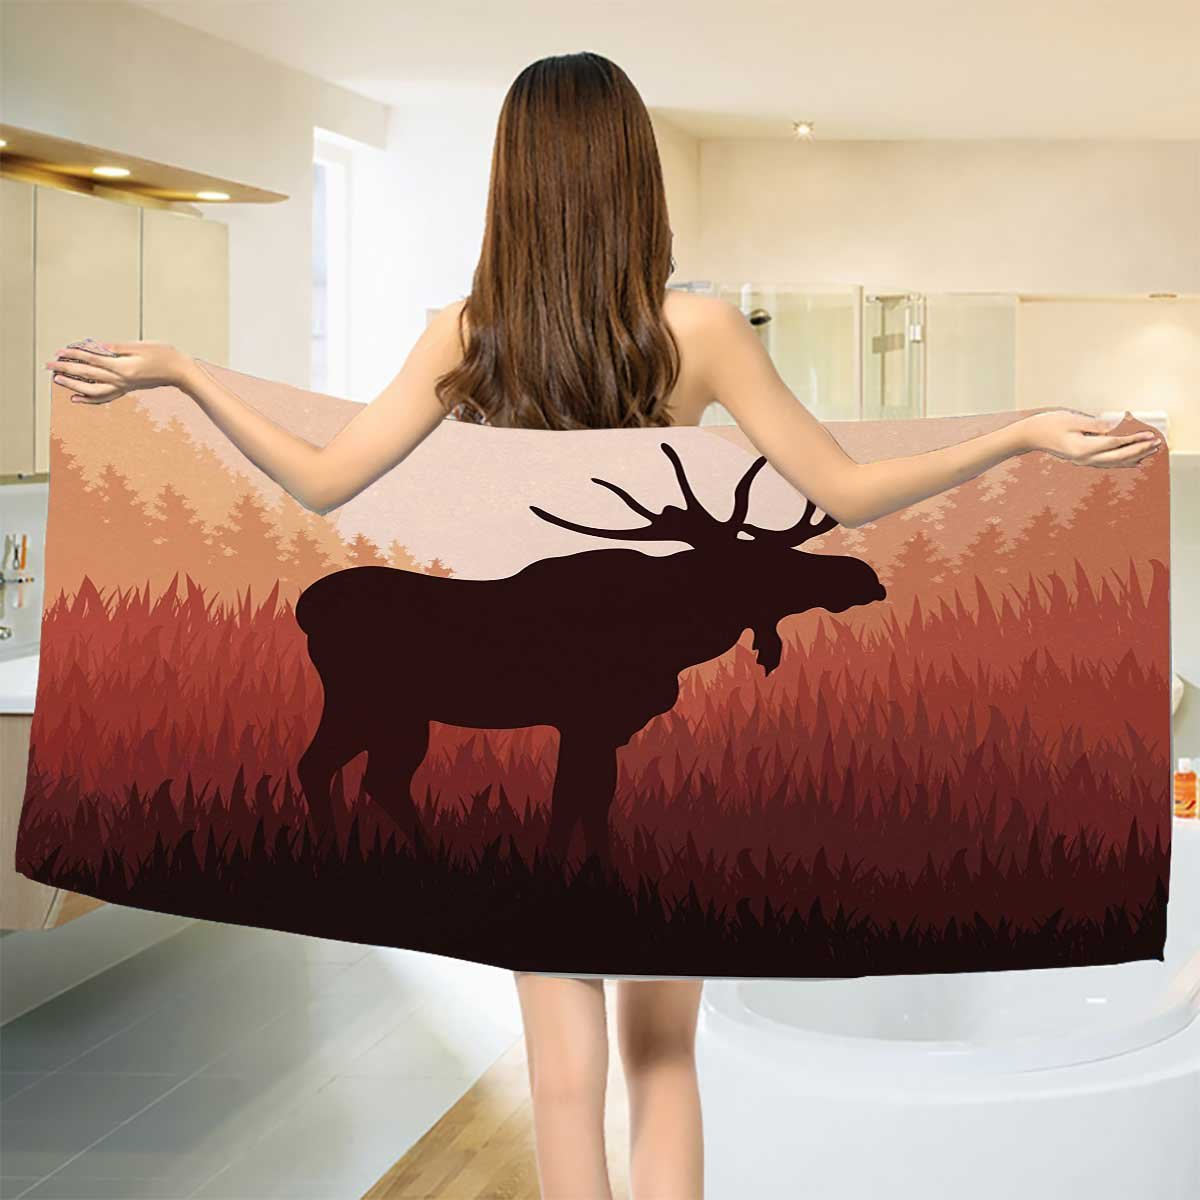 Moose Bathroom Towels Antlers in Wild Alaska Forest Rusty Abstract Landscape Design Deer Theme Woods Print Bath Pool Shower Towel for Kids Red Brown by Anshuone (Image #1)